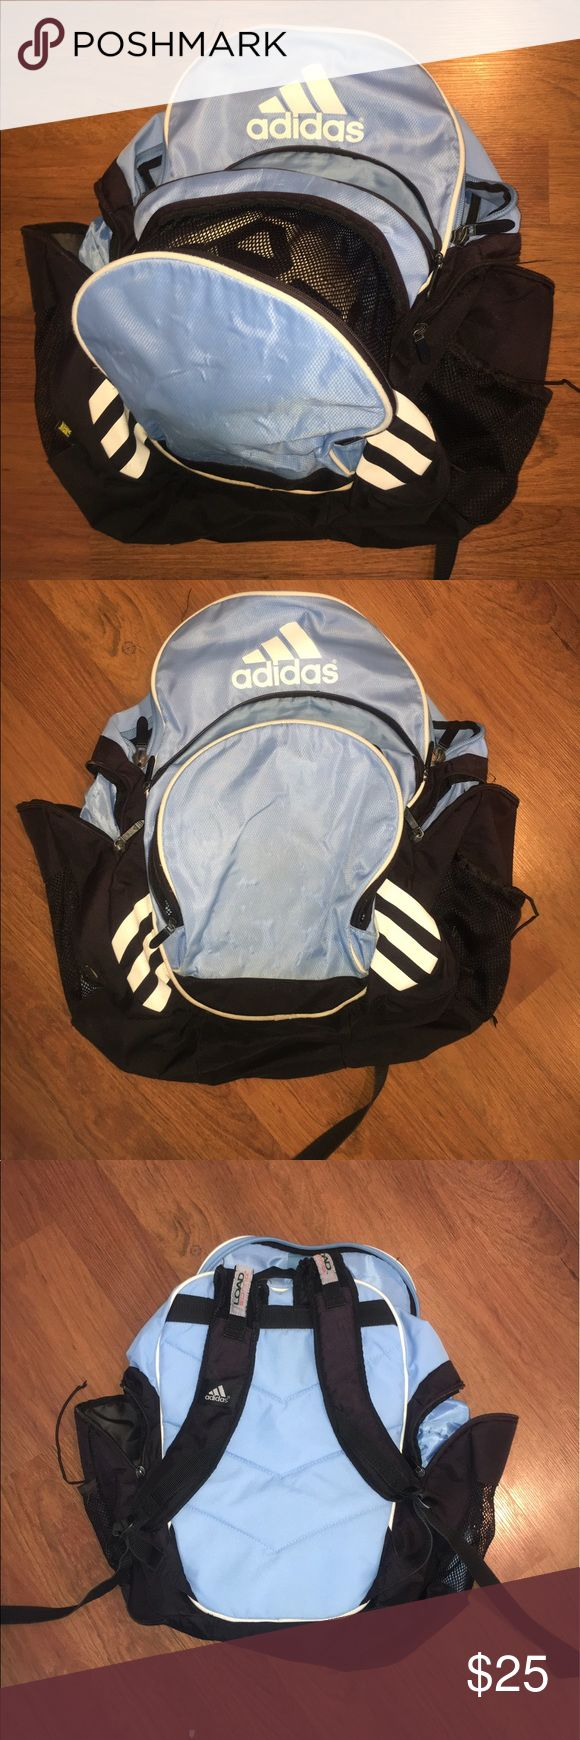 Adidas Soccer/Sports Bag Excellent bag in great shape. Holds ball, water, phone, & tons more. External pockets so gear like shin guards won't have your whole bag smelling! Load spring so even with the bag full, it does not feel to heavy on the shoulders. adidas Bags Backpacks